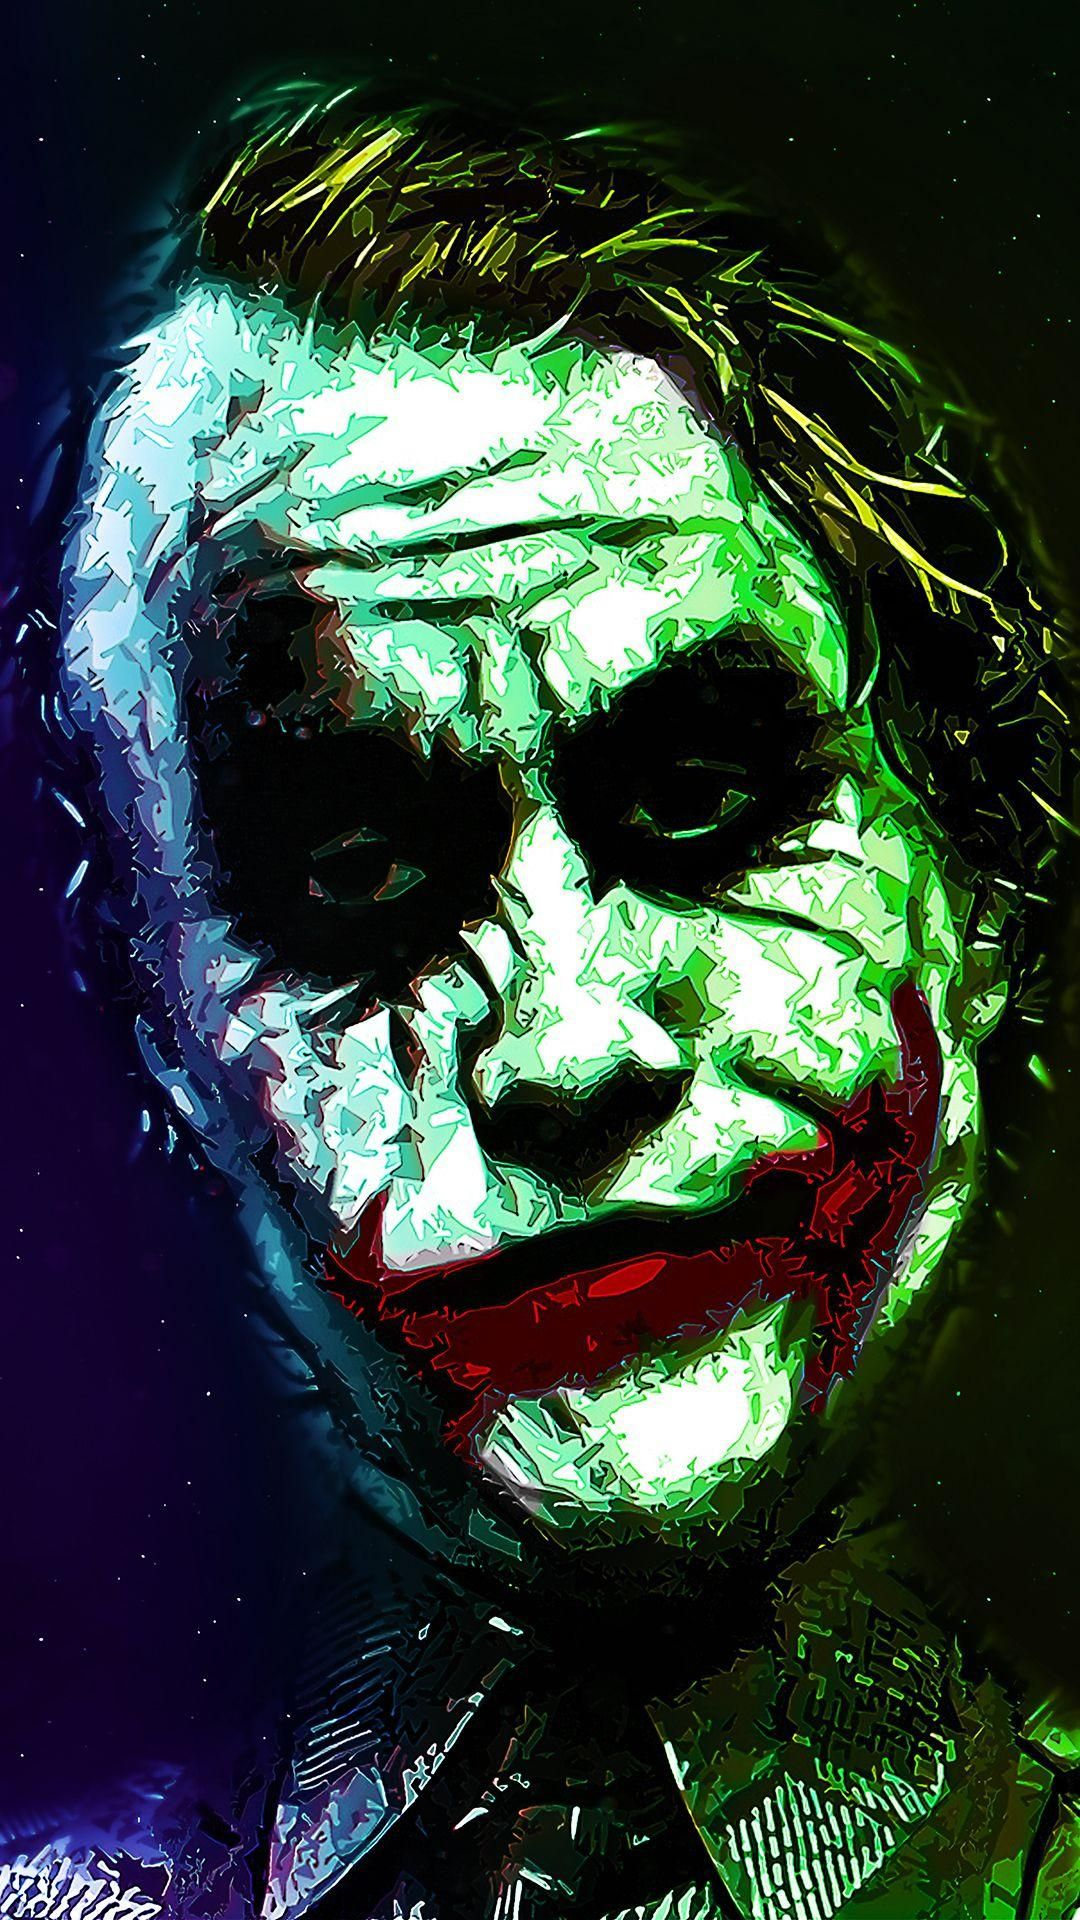 Joker Purple And Green Wallpaper Android Download Joker Hd Wallpaper Joker Wallpapers Joker Images Joker wallpaper hd download for android